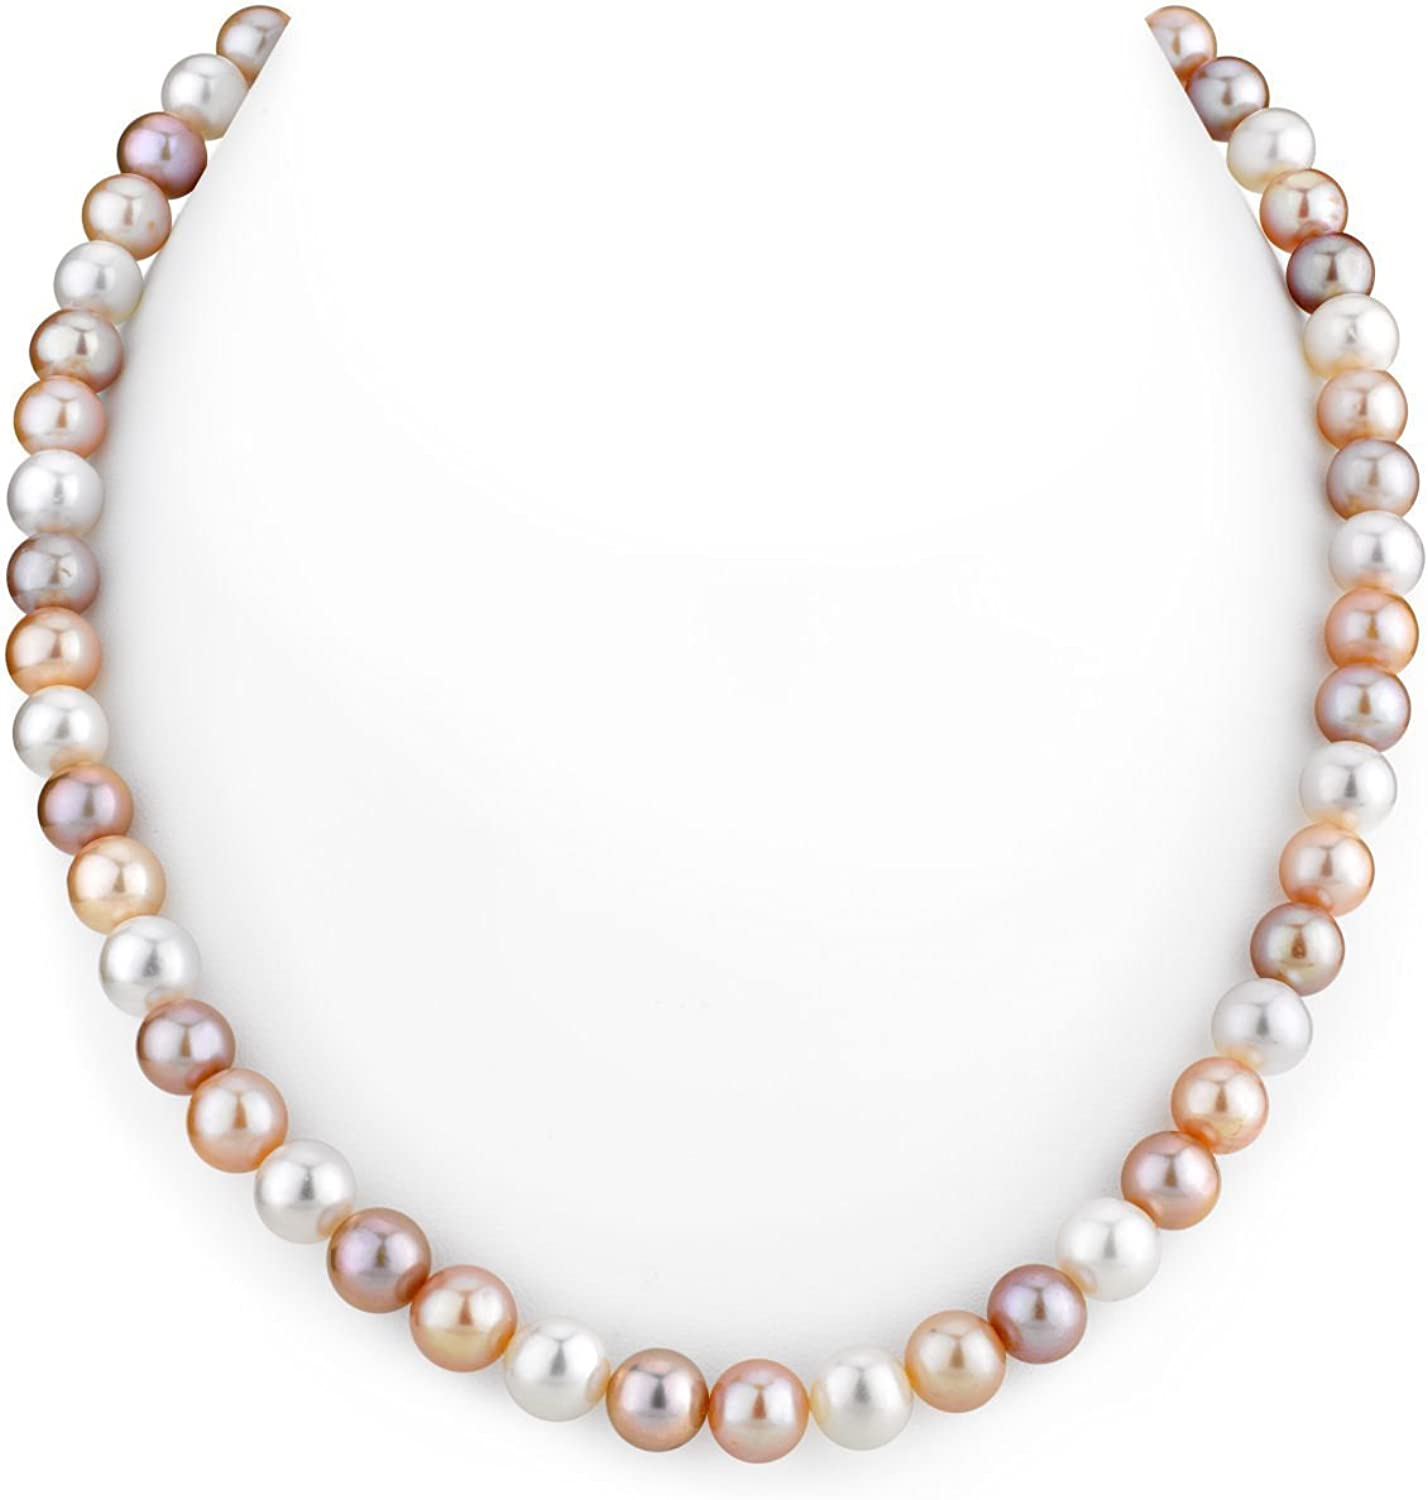 THE PEARL SOURCE 14K Gold 7-8mm AAAA Quality Multicolor Freshwater Cultured Pearl Necklace for Women in 18